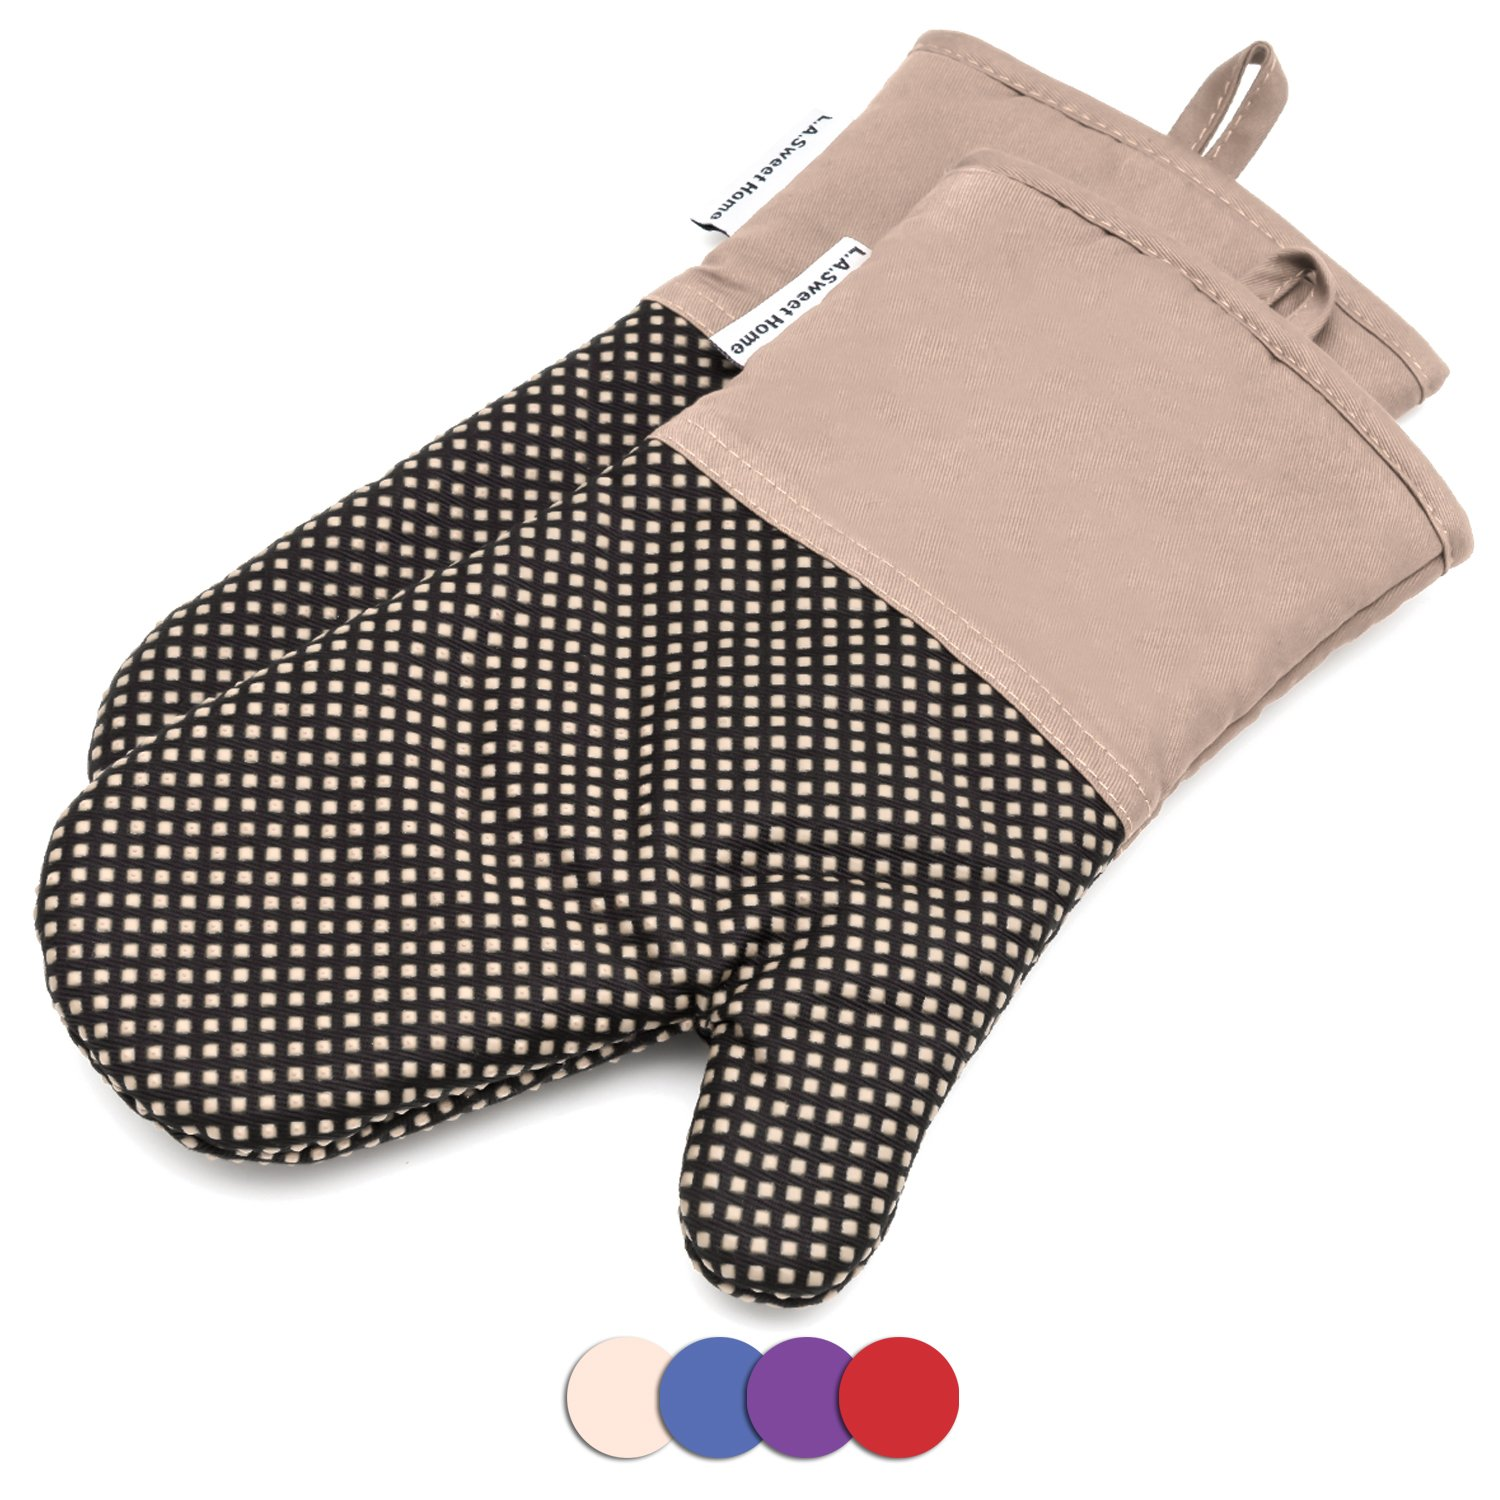 Silicone Oven Mitts Cooking Gloves 480 F Heat Resistant Square Dot Pattern Non-Slip Grip Pot Holders for Kitchen Oven BBQ Grill and Fire Pits for Cooking Baking 7x13 inch 1 pair Khaki by LA Sweet Home